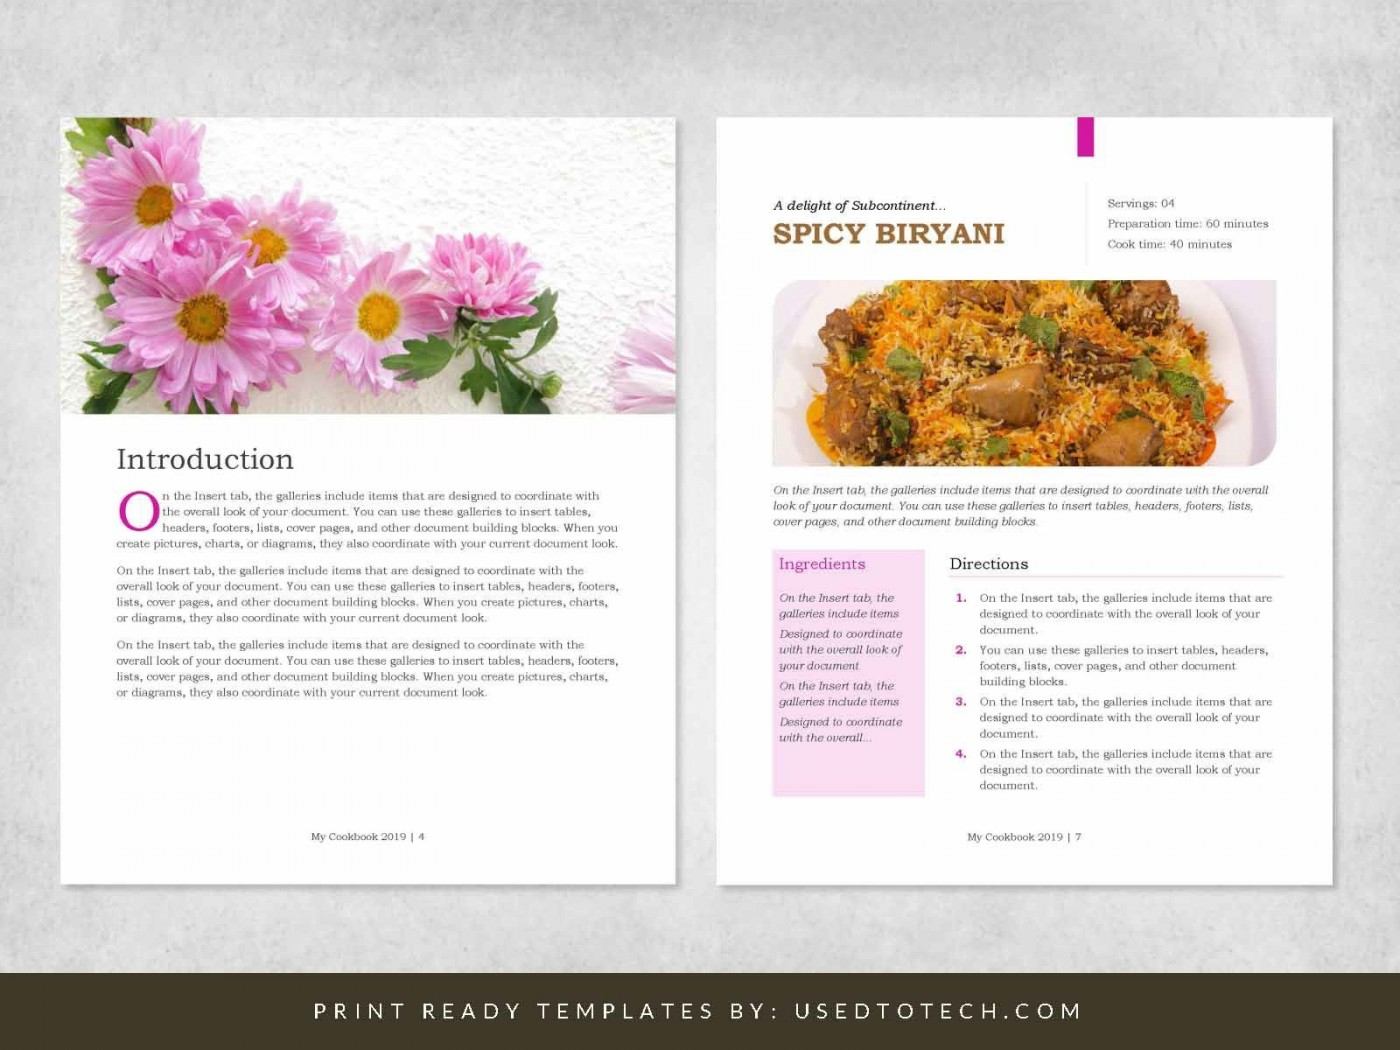 000 Wondrou Create Your Own Cookbook Free Template Inspiration 1400